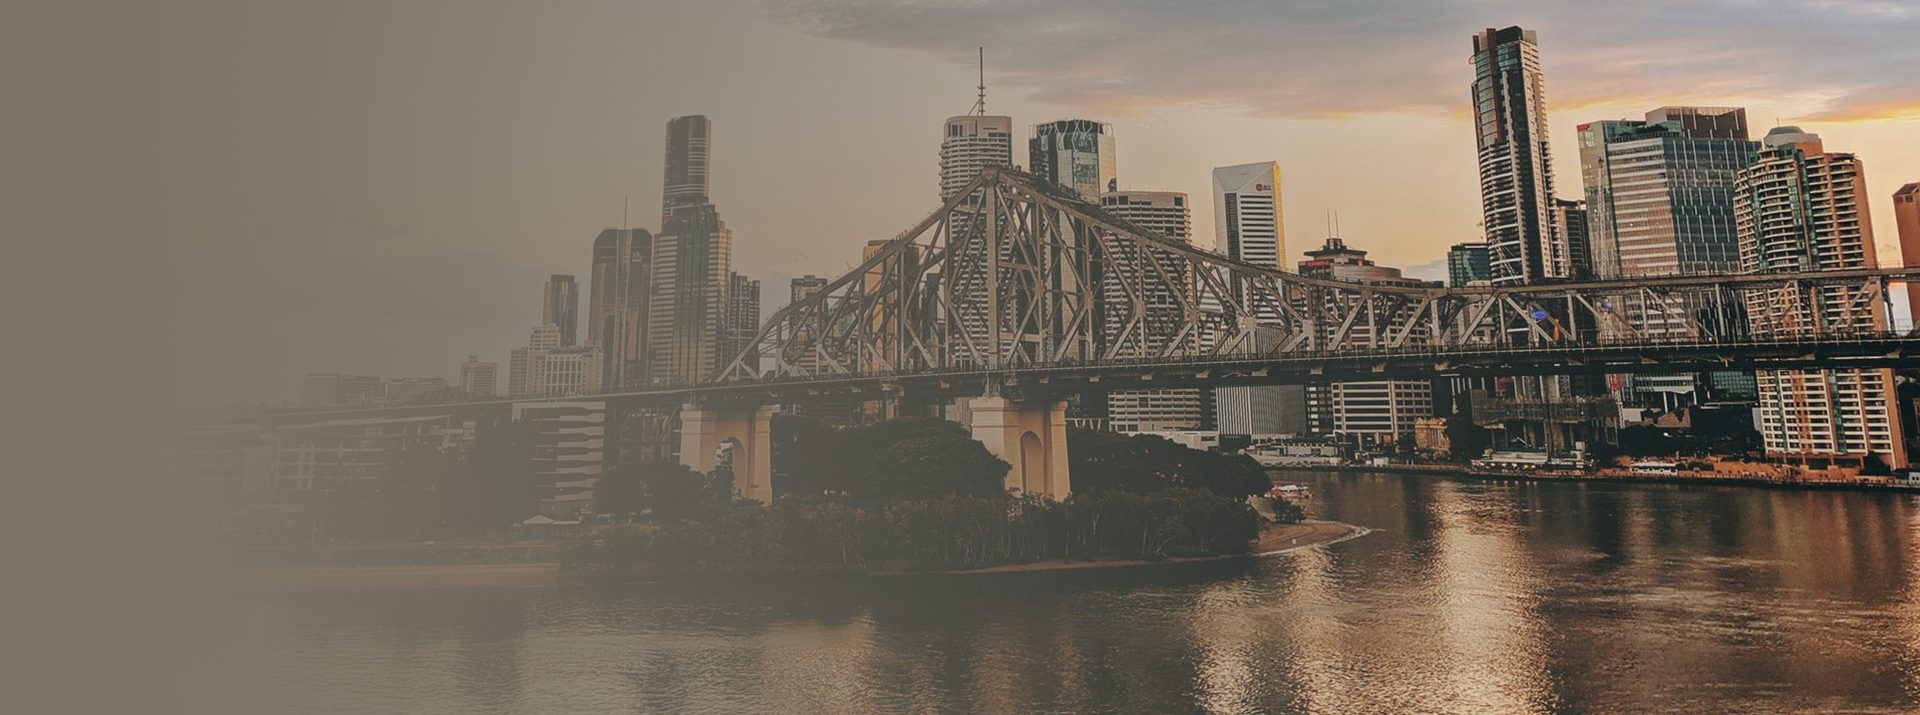 Our physio practice is based in Brisbane, Queensland